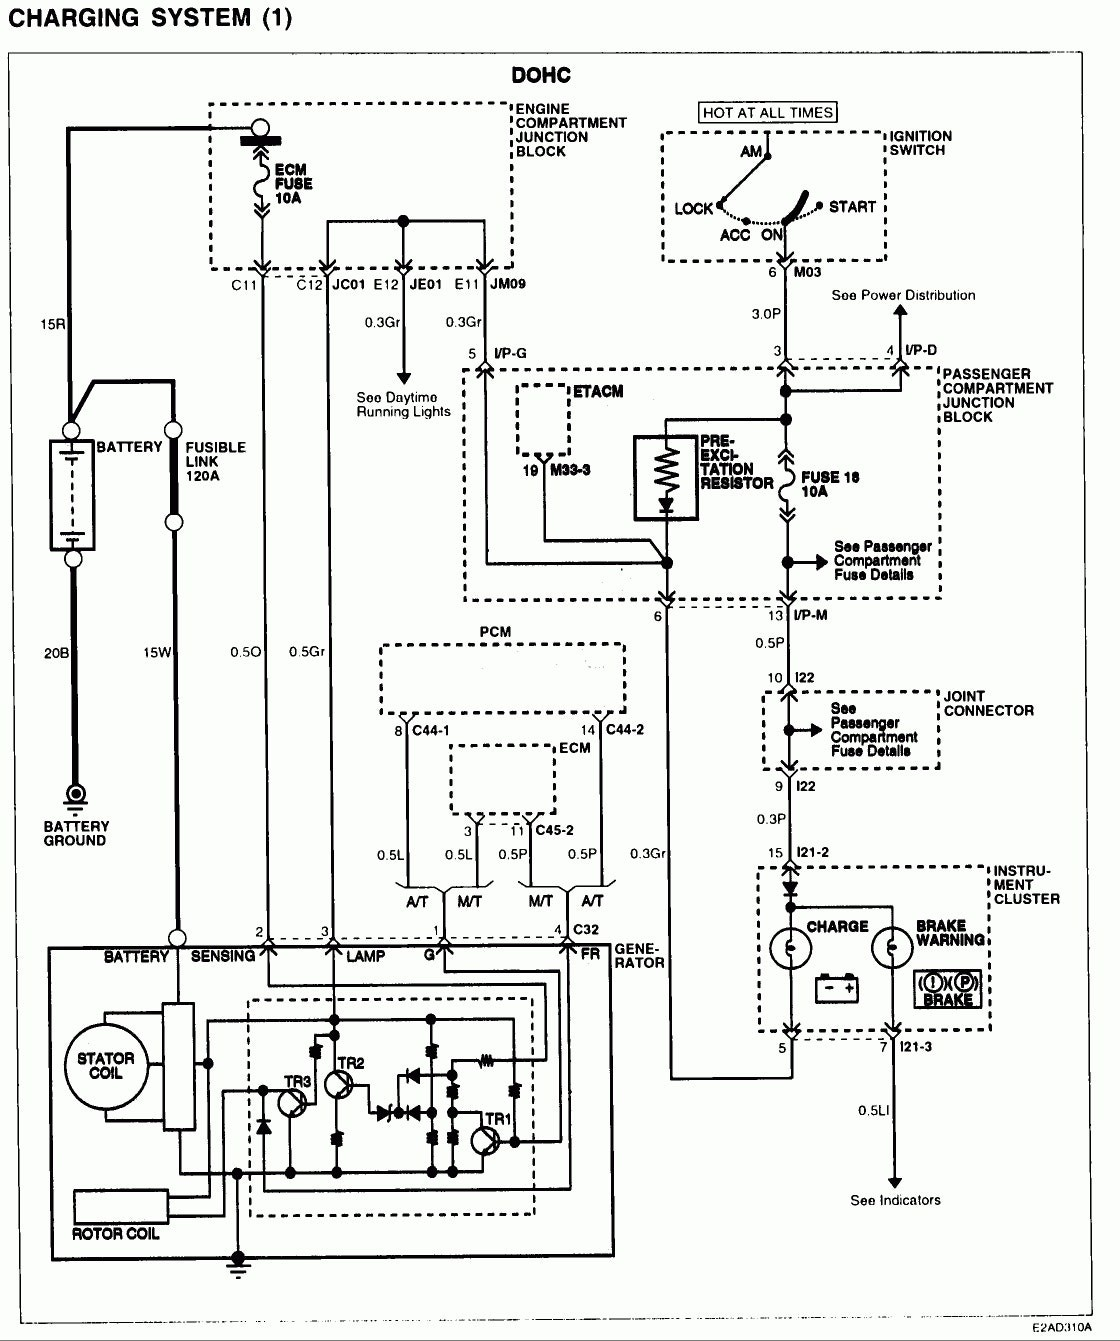 Ac Wiring Diagram 02 Hyundai Accent